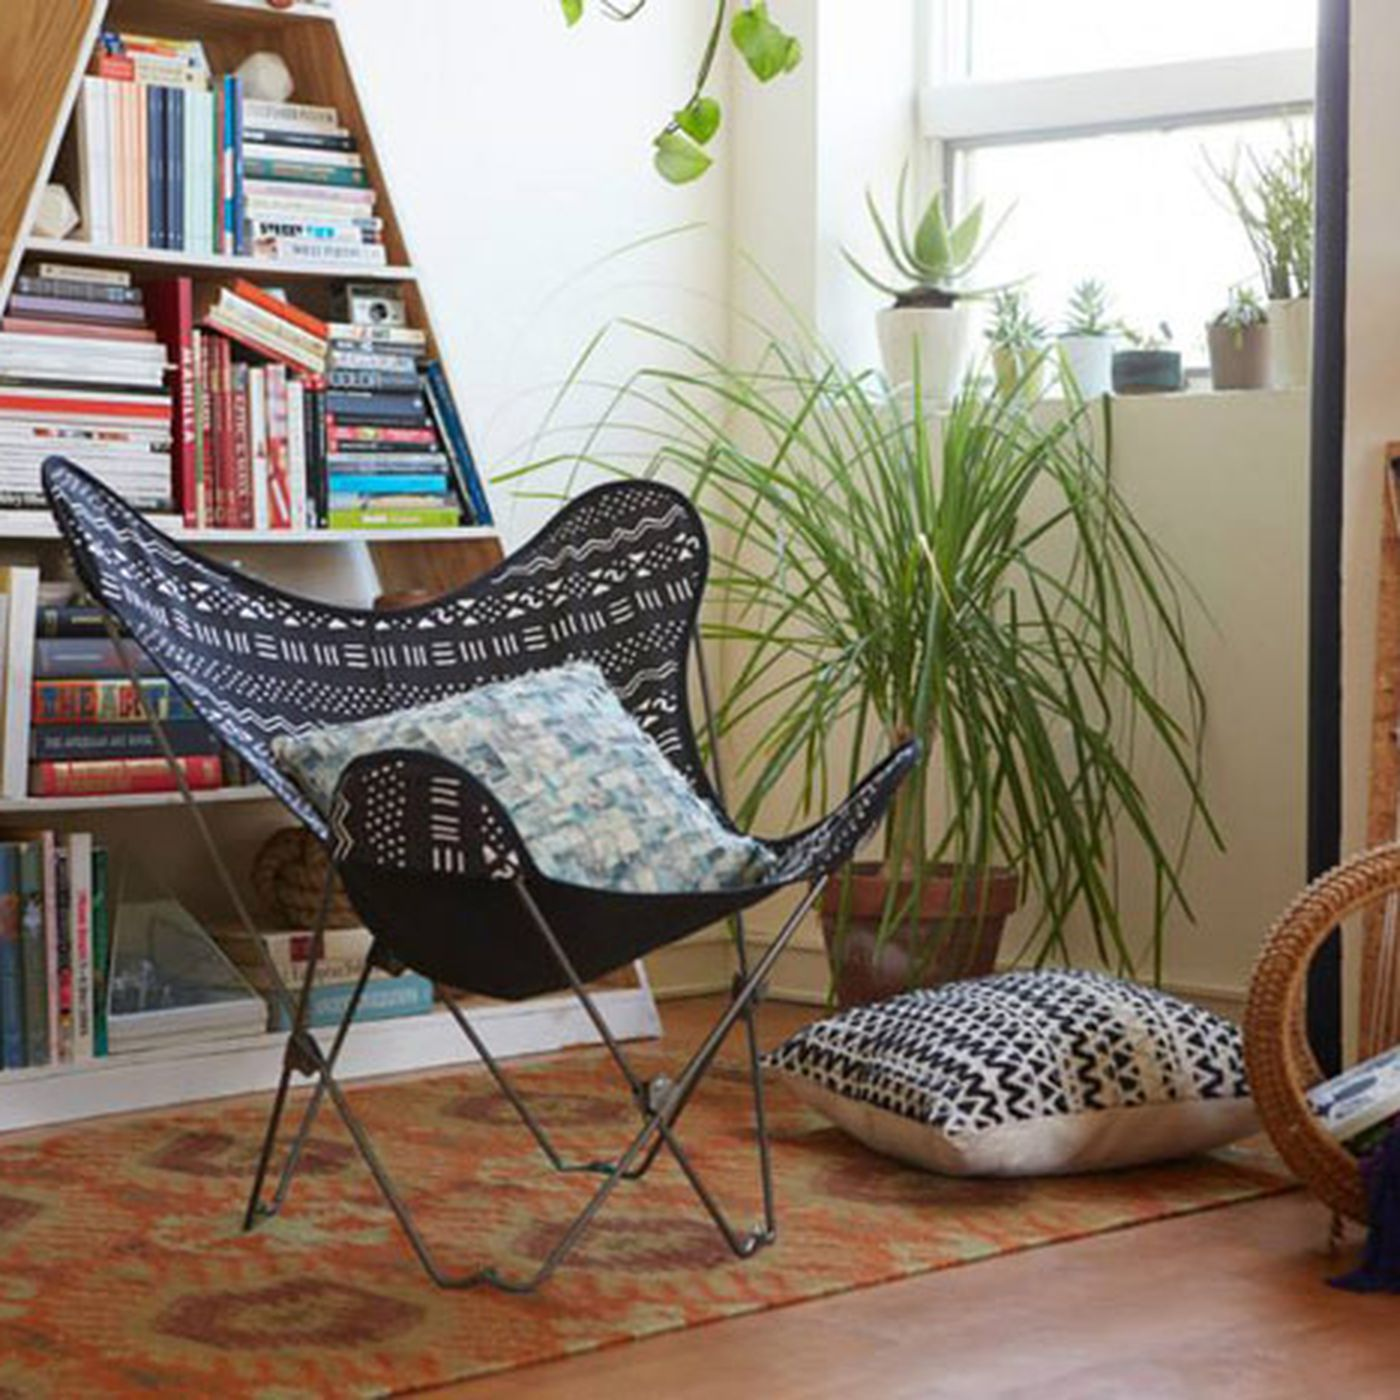 La S Best Shops For Affordable Dorm Room Furniture Decor Racked La